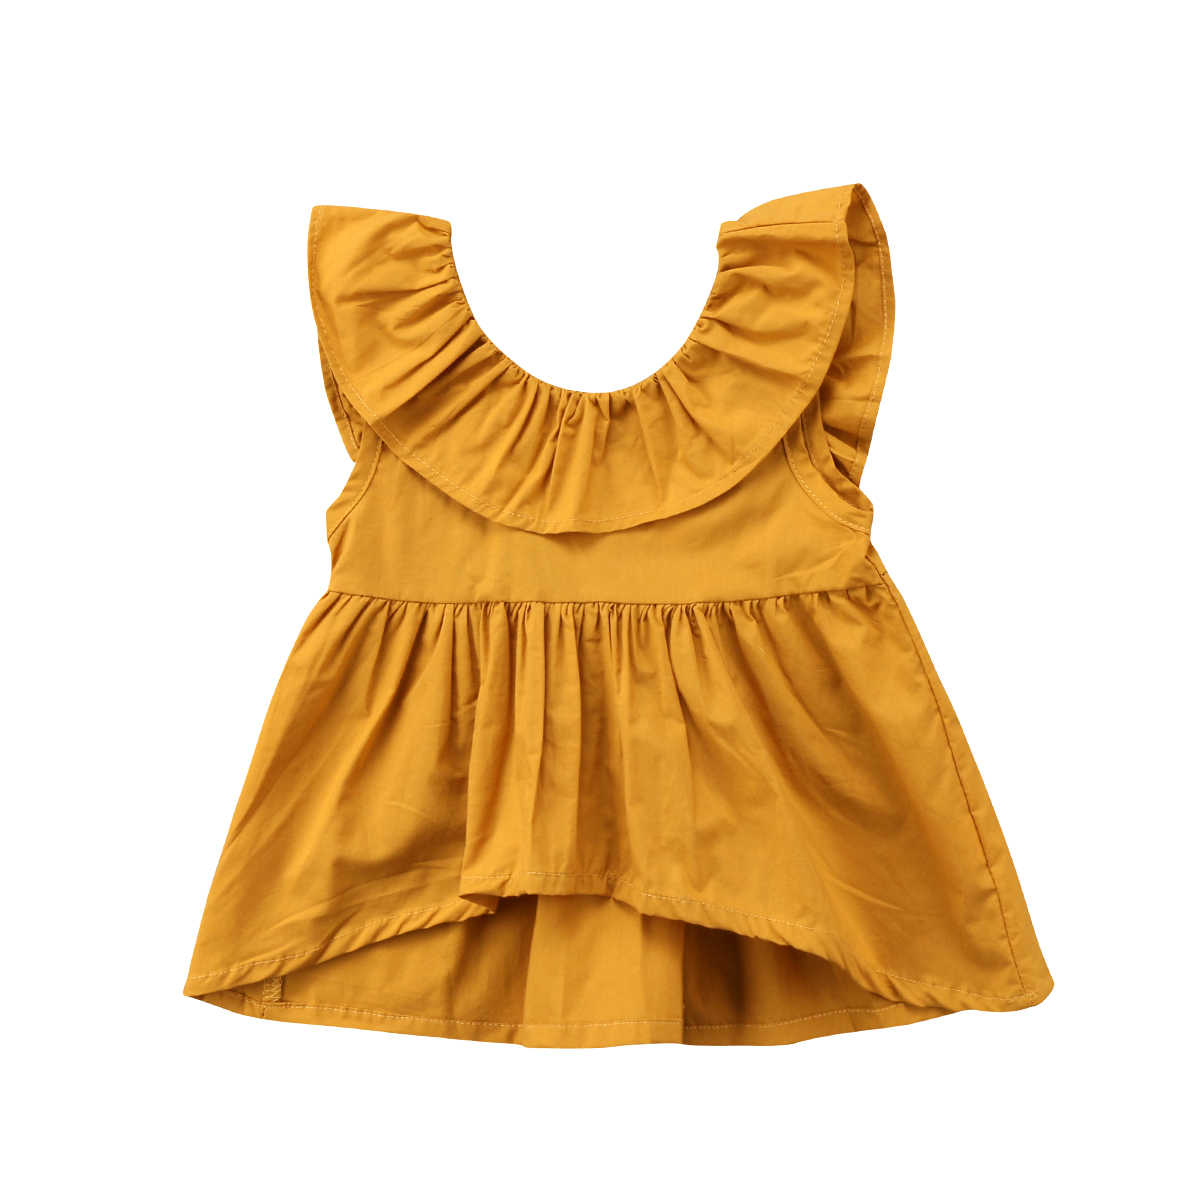 3b7f14f8f53e Detail Feedback Questions about 2018 Kids Baby Girl Ruffle Mini Dress Crop  Yellow Top Blouse Sundress Summer Clothes Cute Clothing on Aliexpress.com  ...